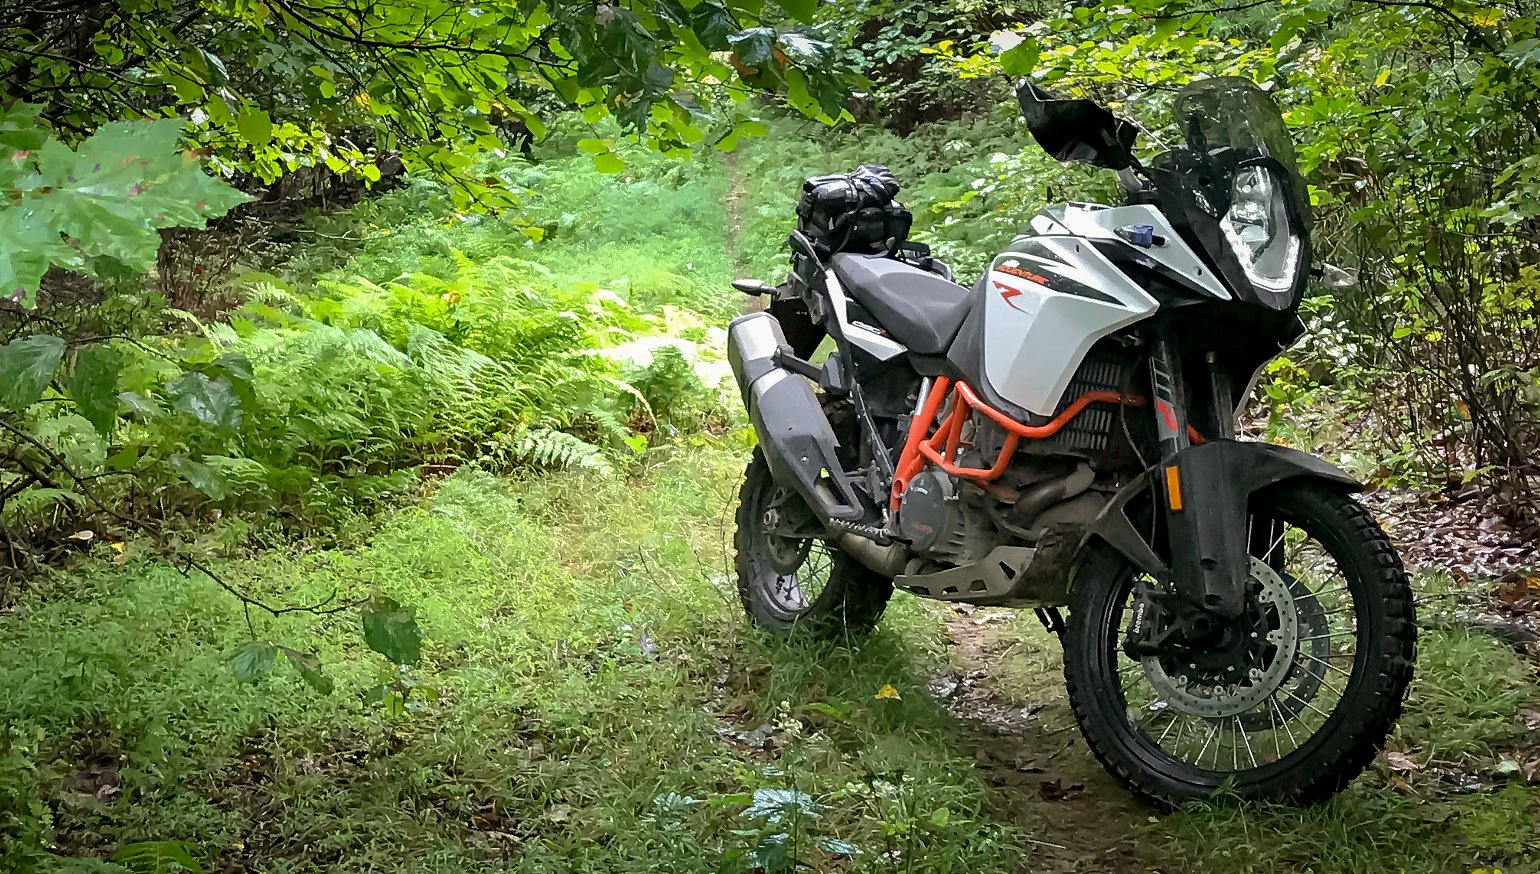 2017 KTM 1090 Adventure R review